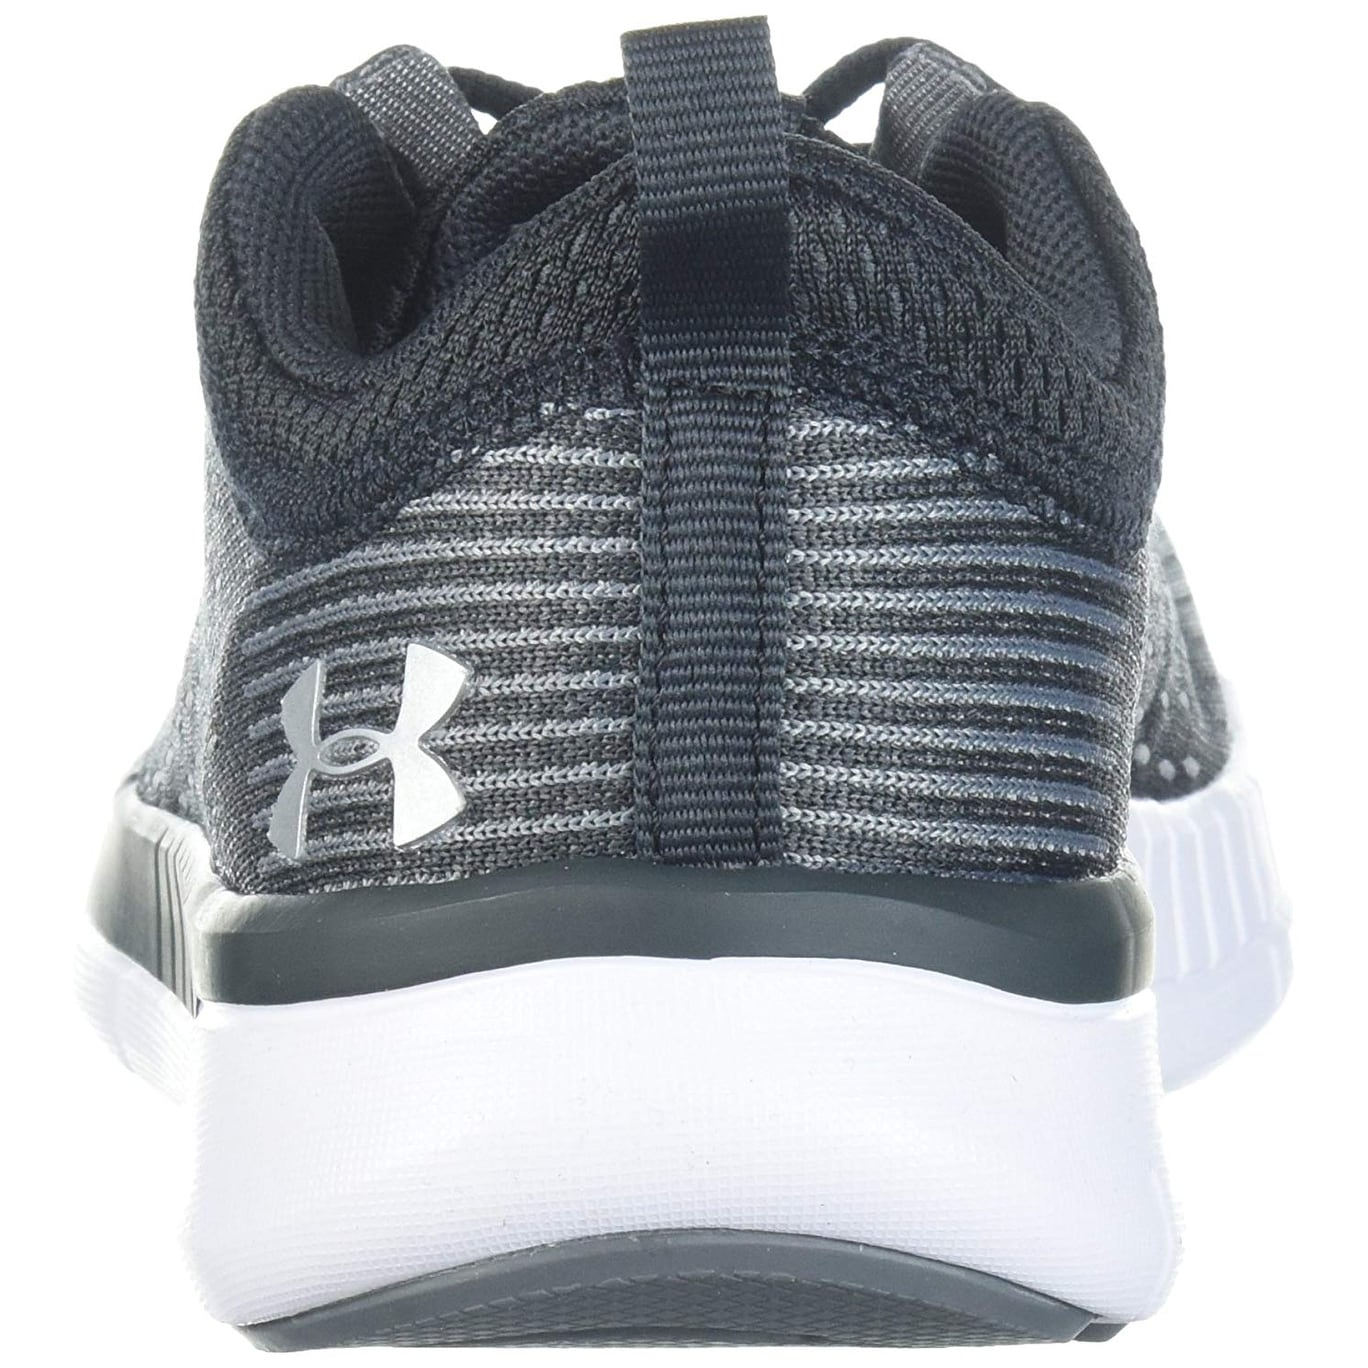 d264be22af80 Shop Under Armour Kids  Girls  Grade School Lightning 2 Sneaker - 5 M US -  On Sale - Free Shipping Today - Overstock.com - 25686608